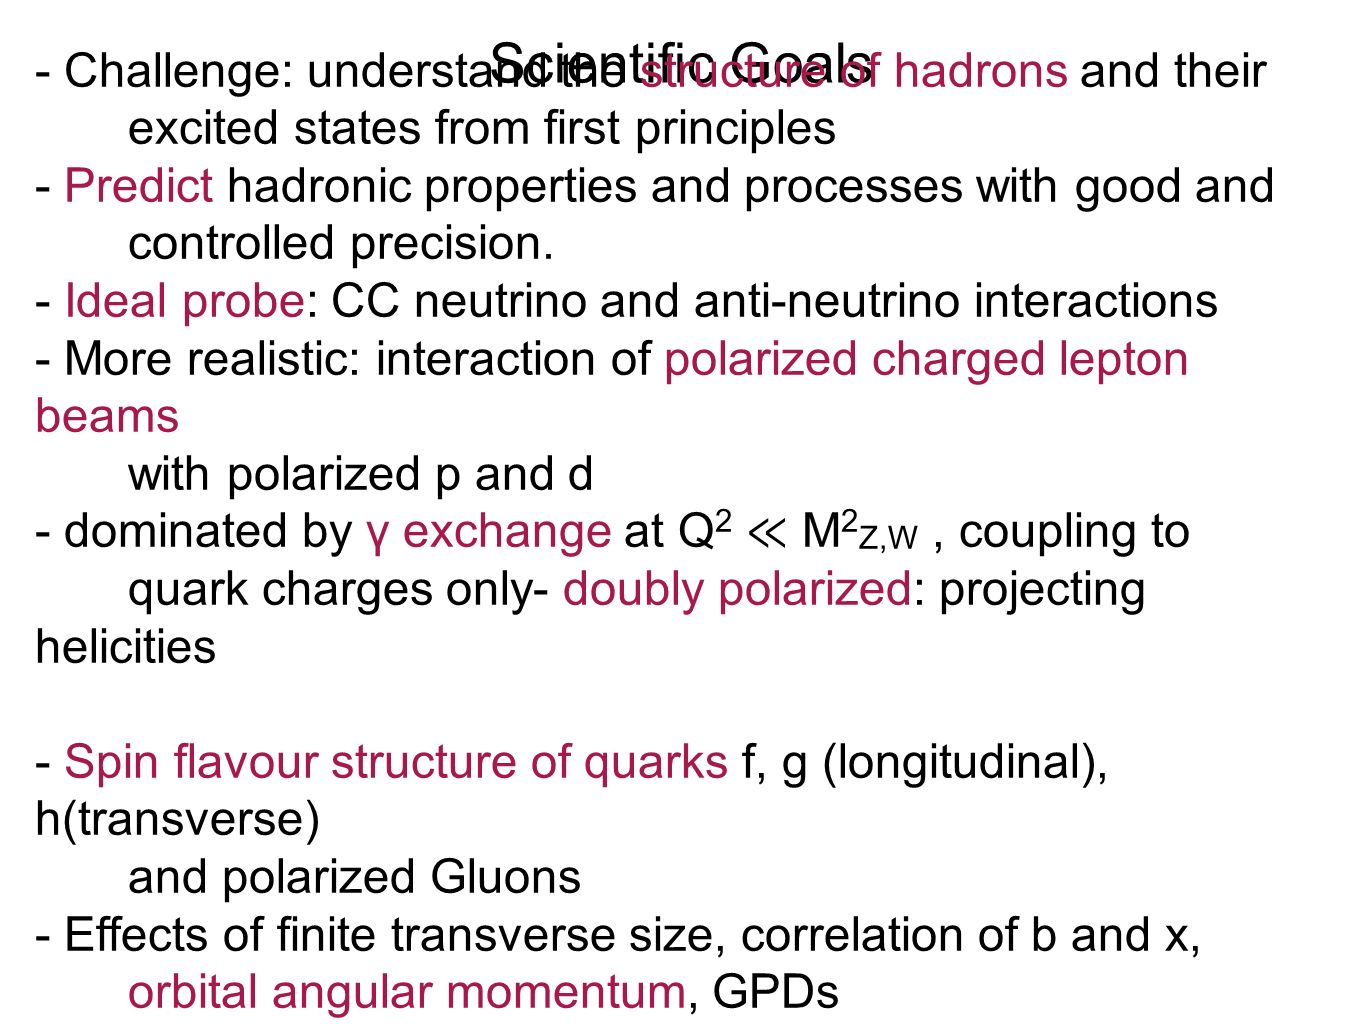 Scientific Goals - Challenge: understand the structure of hadrons and their excited states from first principles - Predict hadronic properties and processes with good and controlled precision.